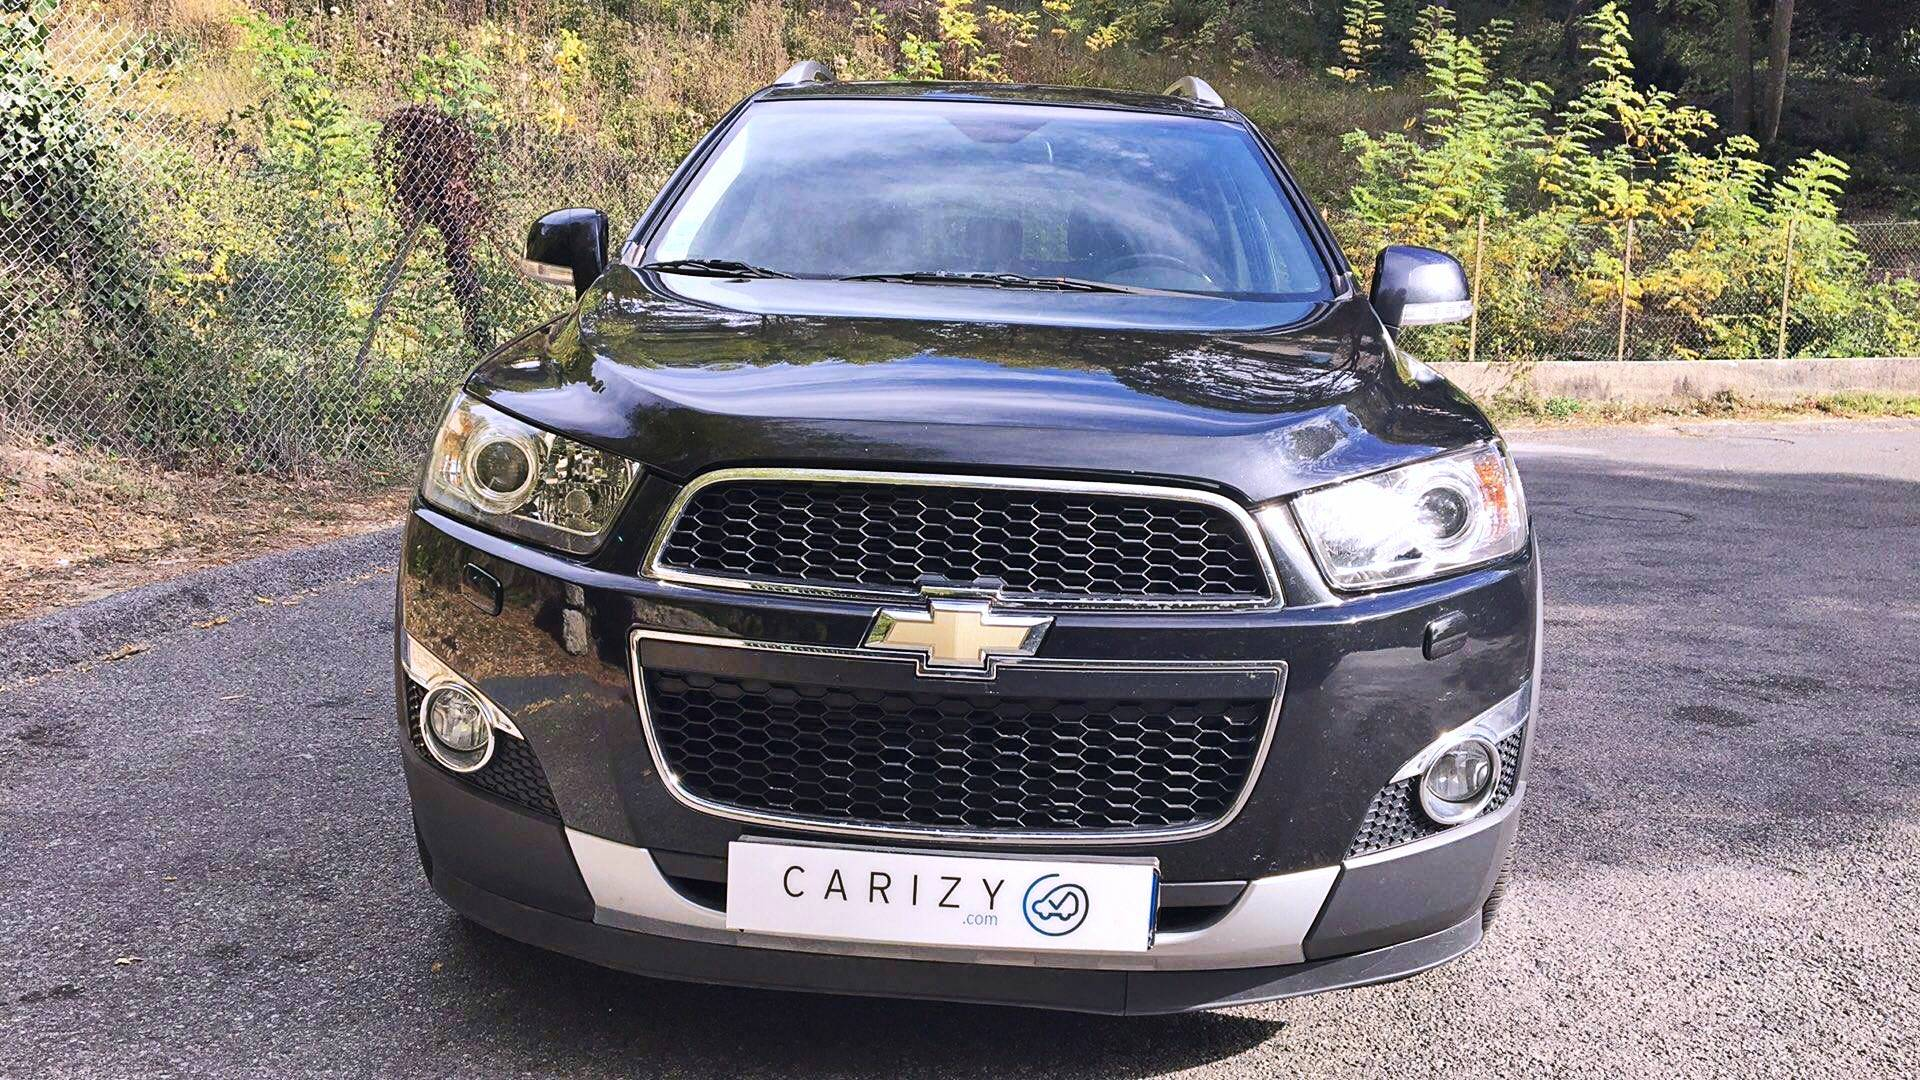 chevrolet captiva d 39 occasion 2 2 vcdi 185 ltz awd bva nice carizy. Black Bedroom Furniture Sets. Home Design Ideas